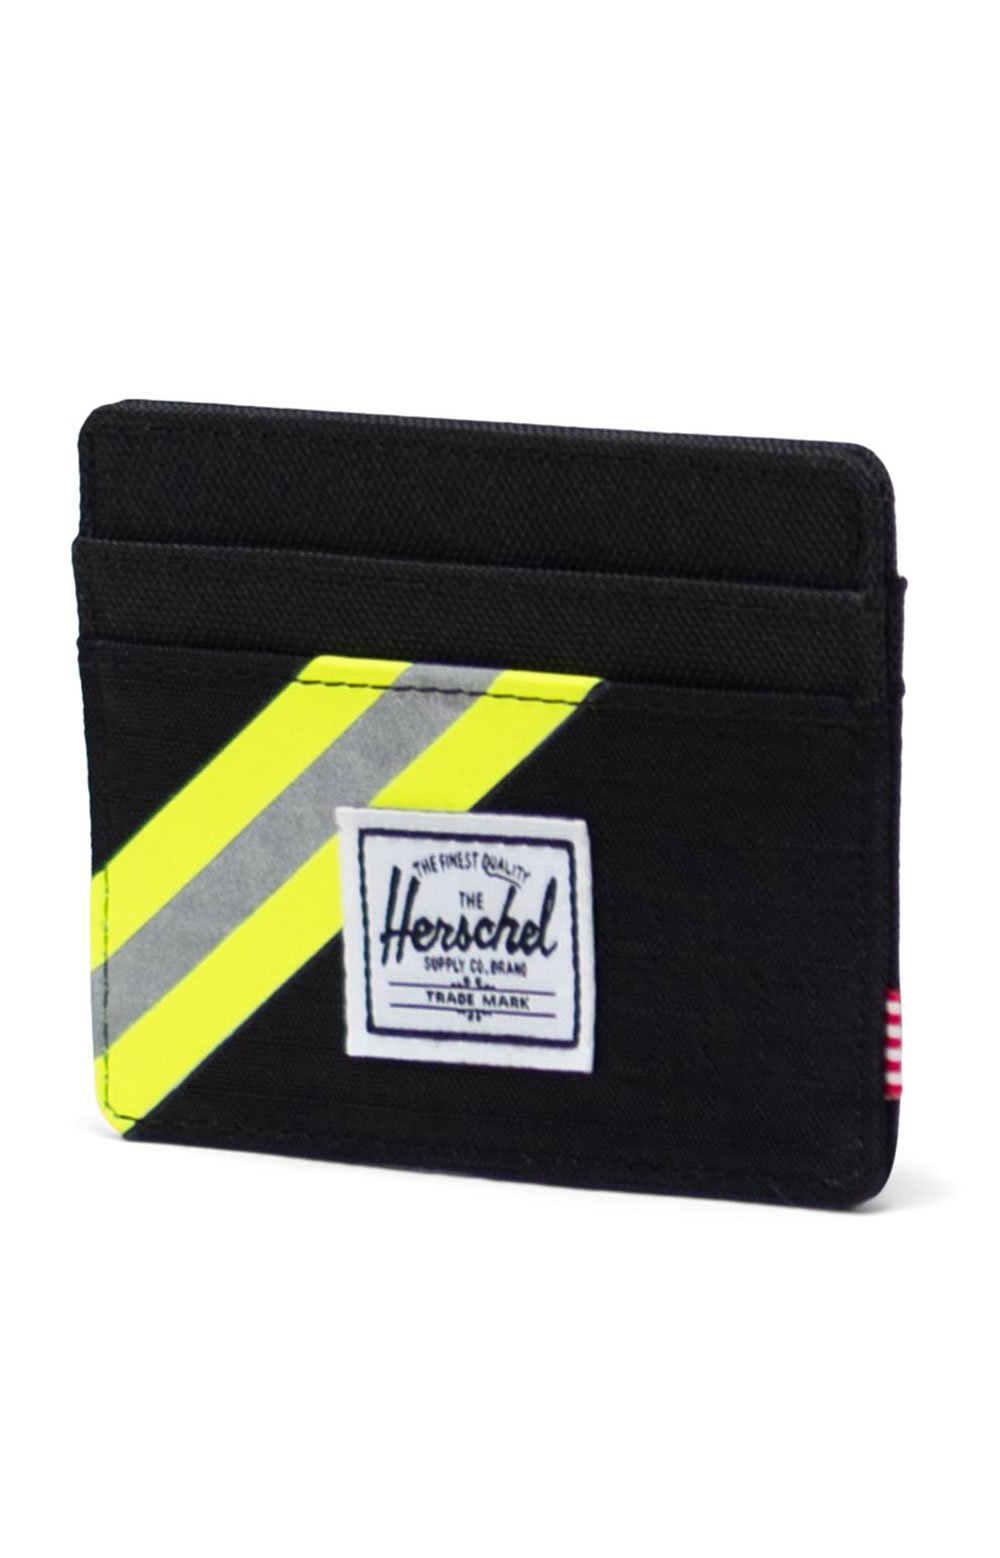 Charlie Wallet - Black Enzyme Ripstop/Black/Safety Yellow 3